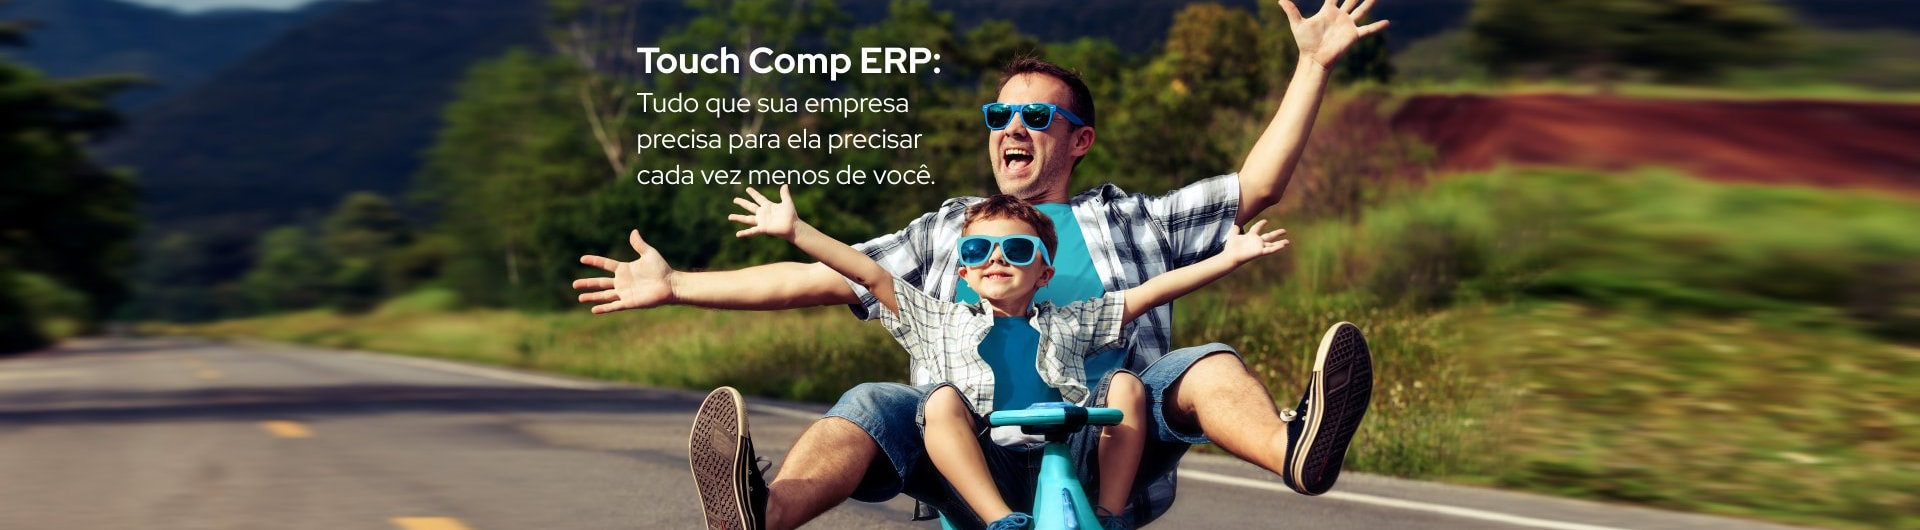 Banner Touch Comp ERP